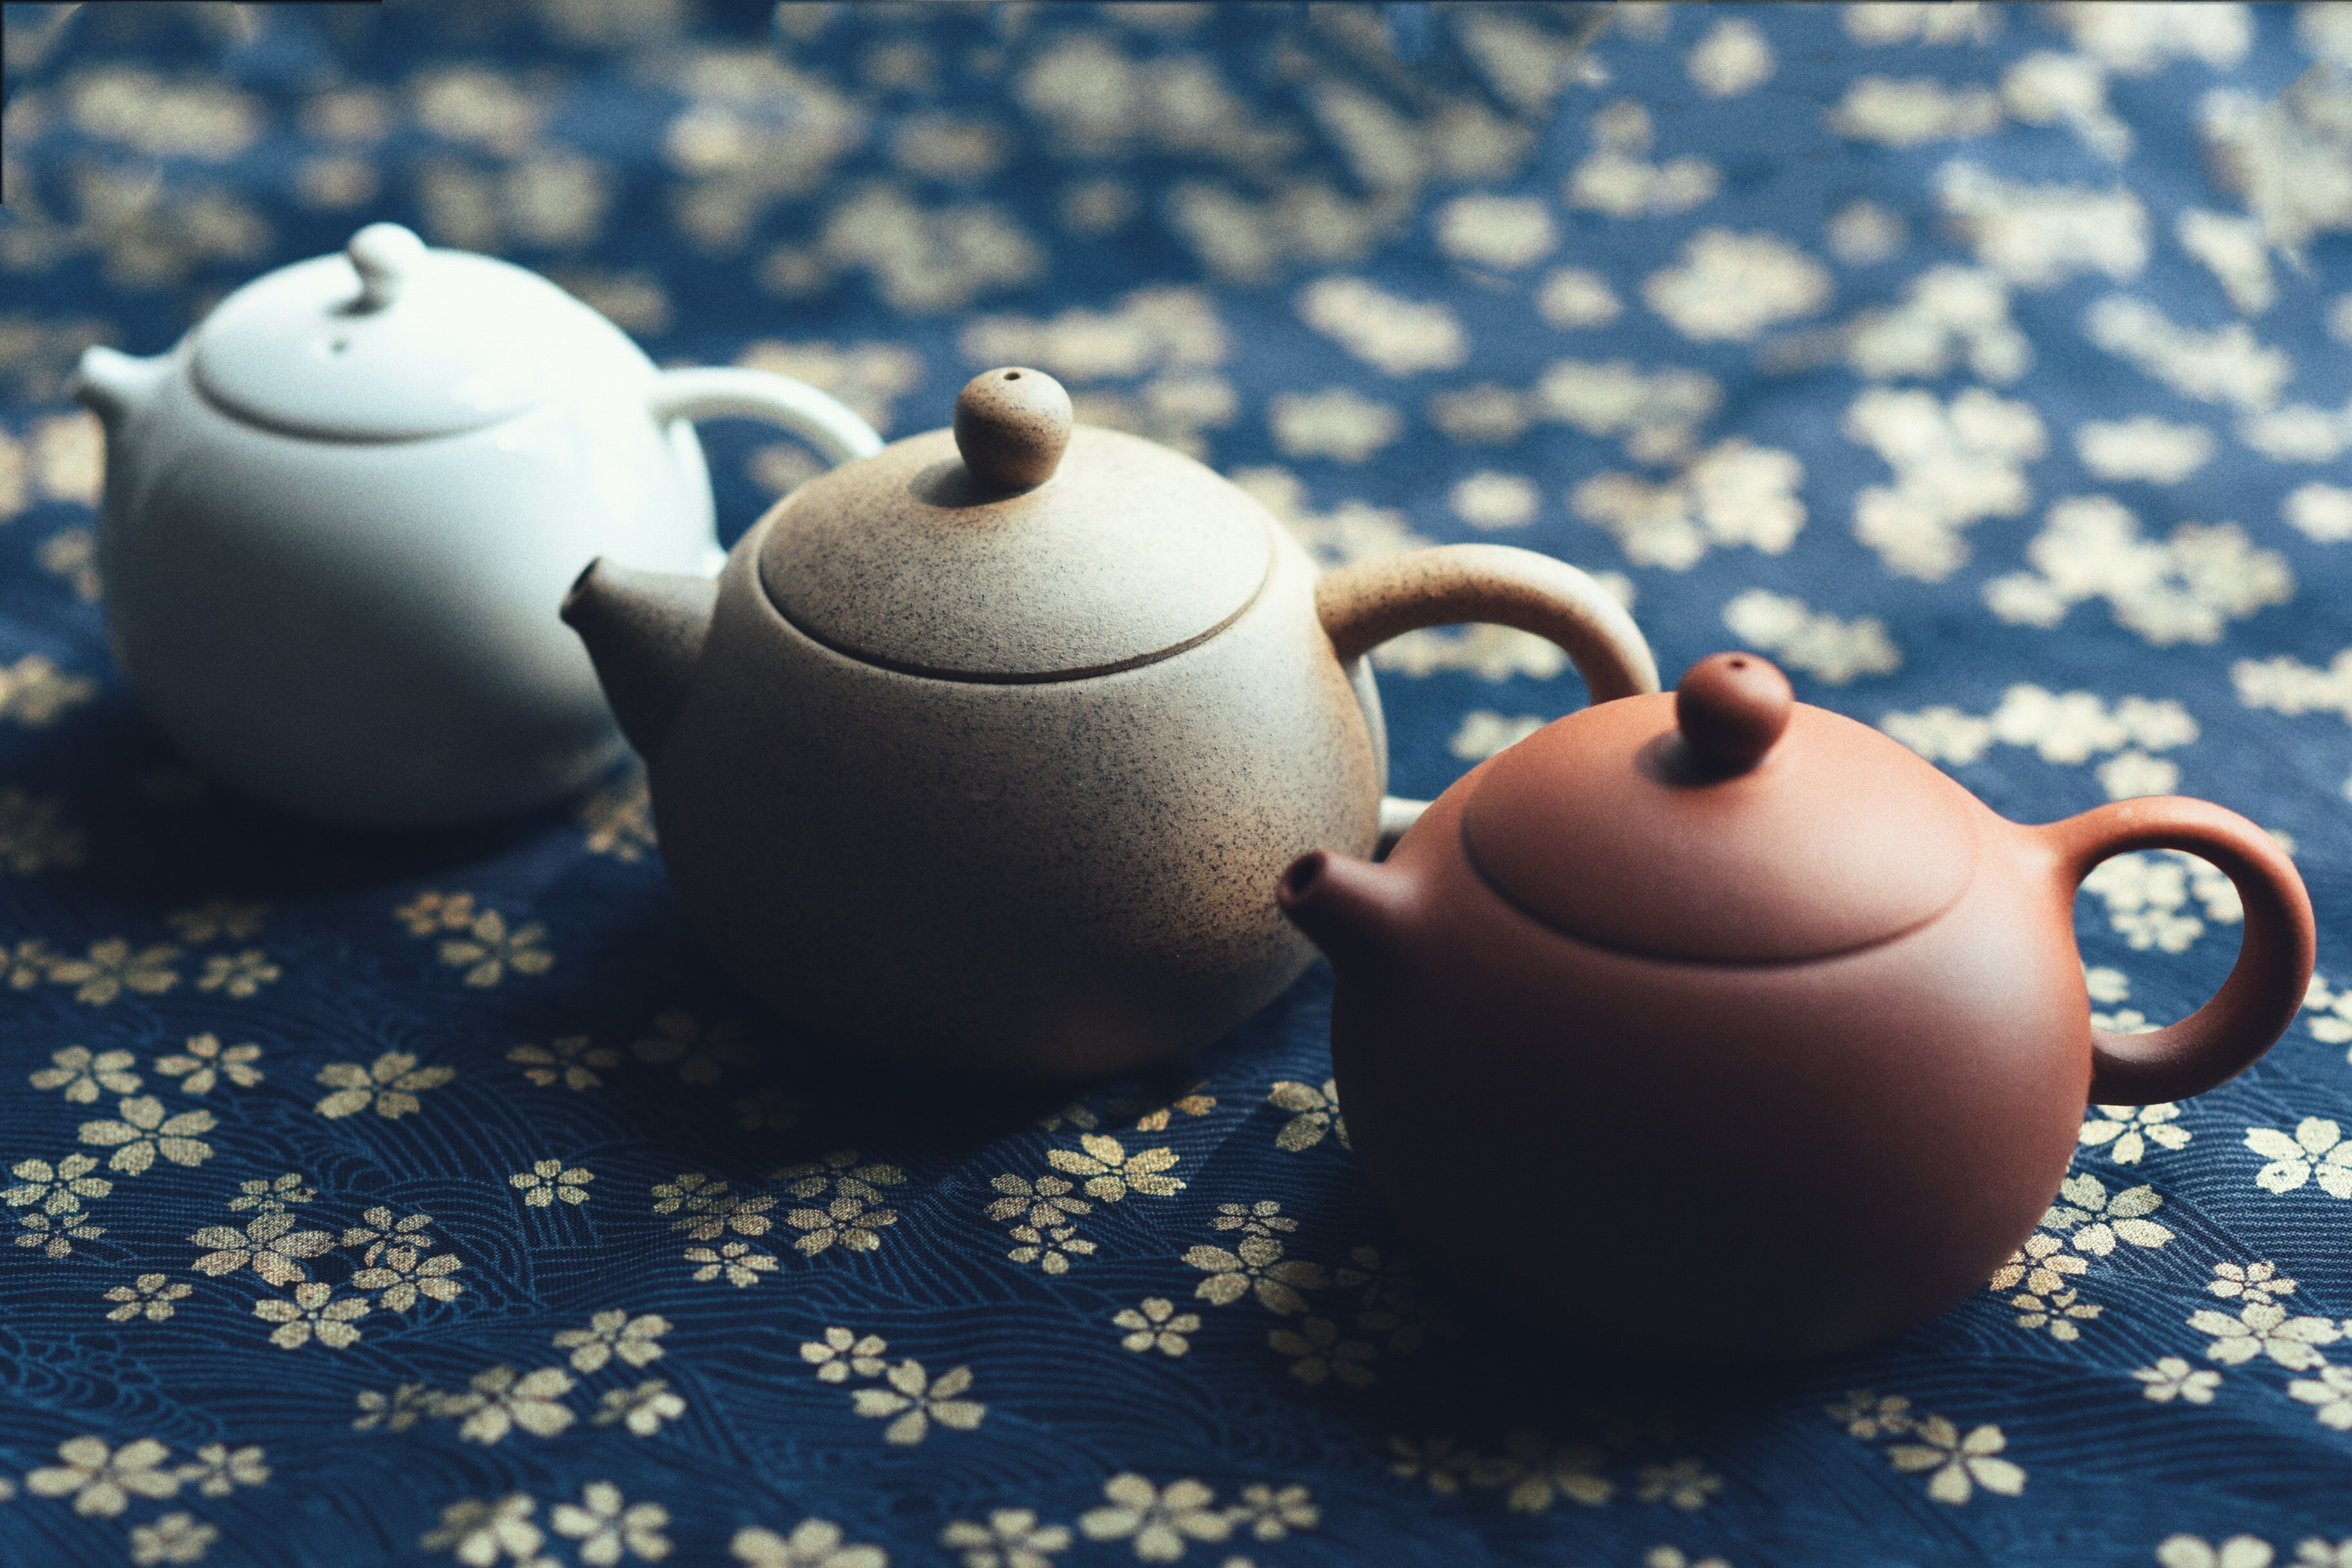 Delicate Chinese teapot.  Contact us for more info. www.henryapparel.com  #fashiontrends #streetstyle #mensfashion #fashion #instafashion #streetwear #mensclothing #inspiration #NewYork #factory #manufacturer #shanghai #california #China #apparel #sourcing #mensclub #lifestylewear #womenswear #womenscloth #sewing #fabric